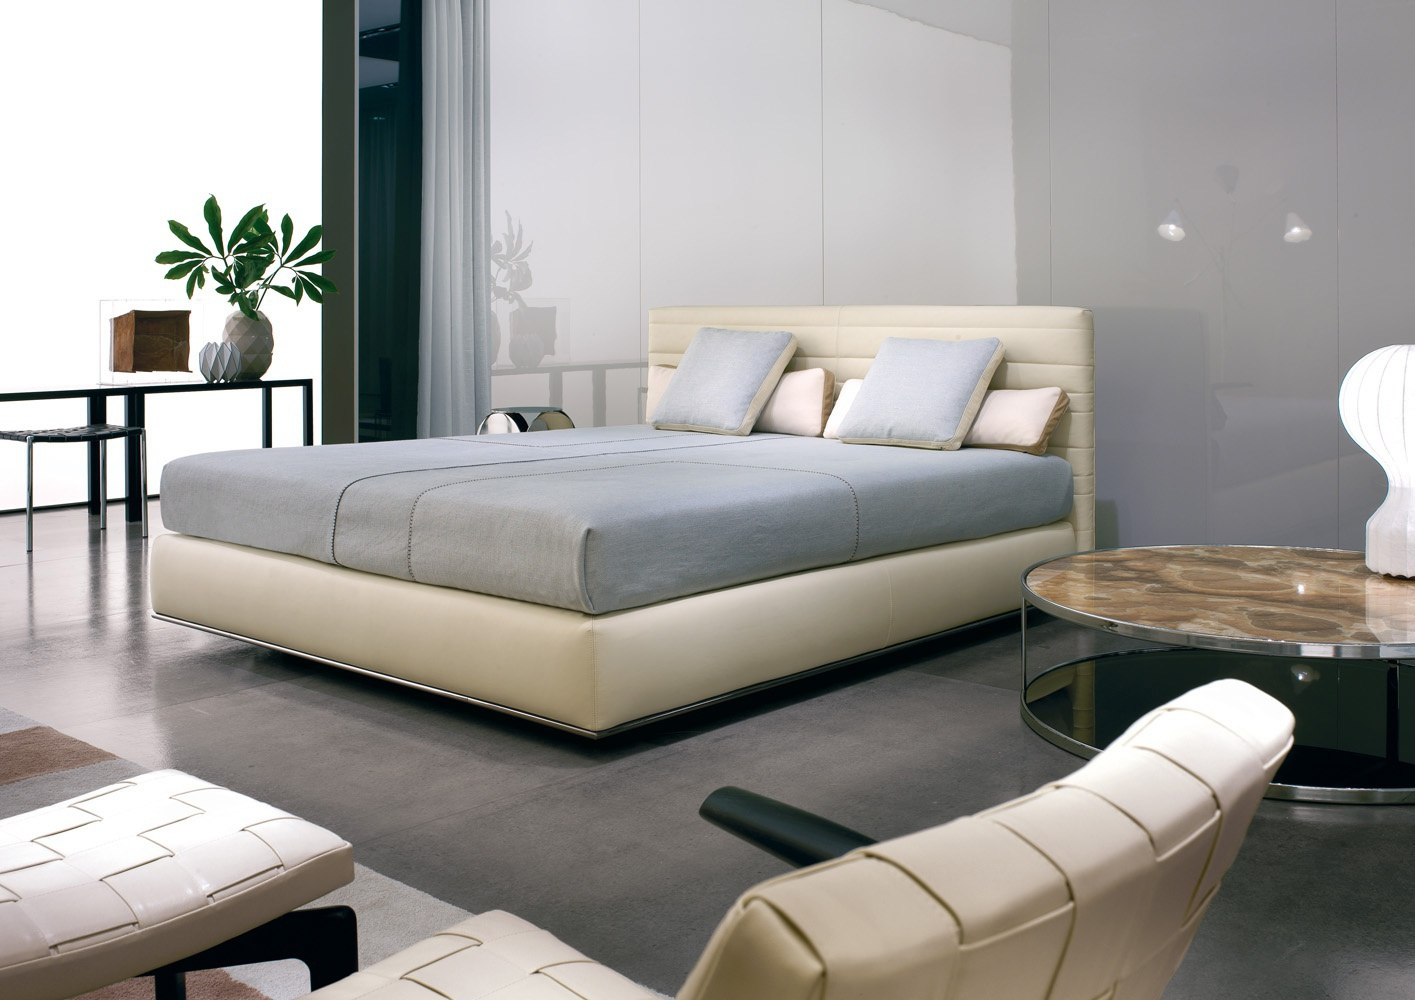 The Hamilton Bed Minotti Luxury Furniture Mr